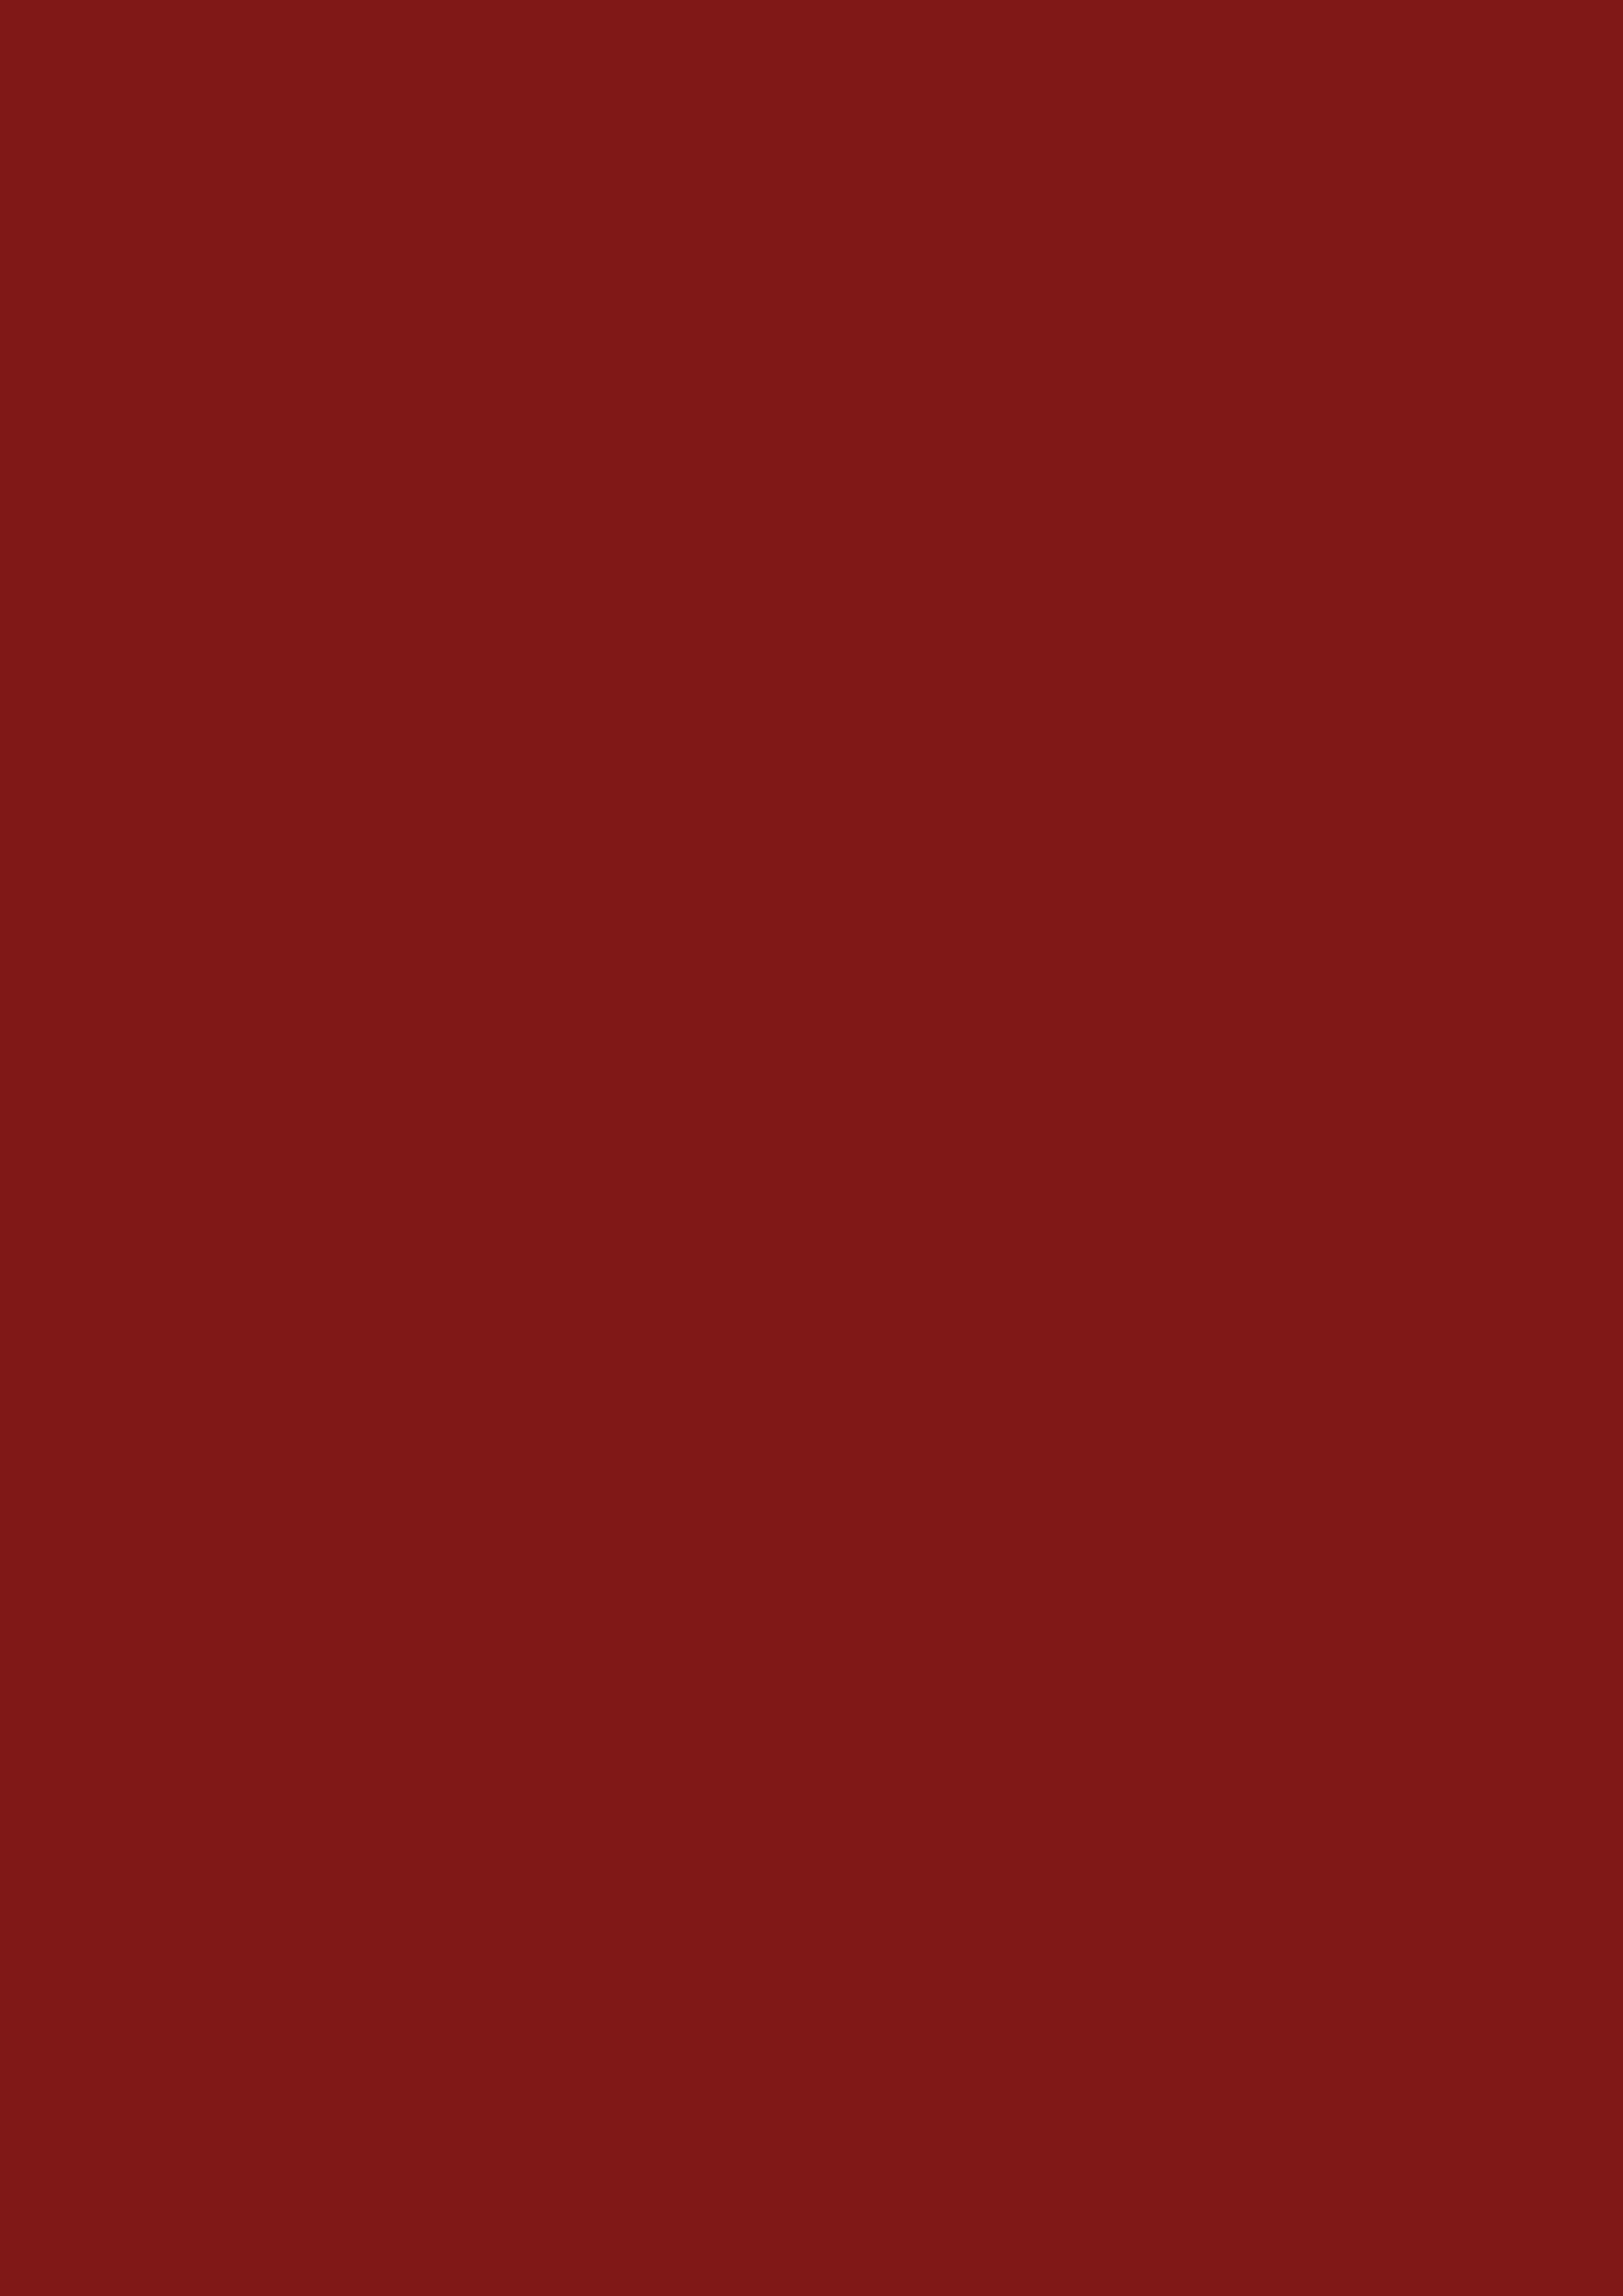 2480x3508 Falu Red Solid Color Background